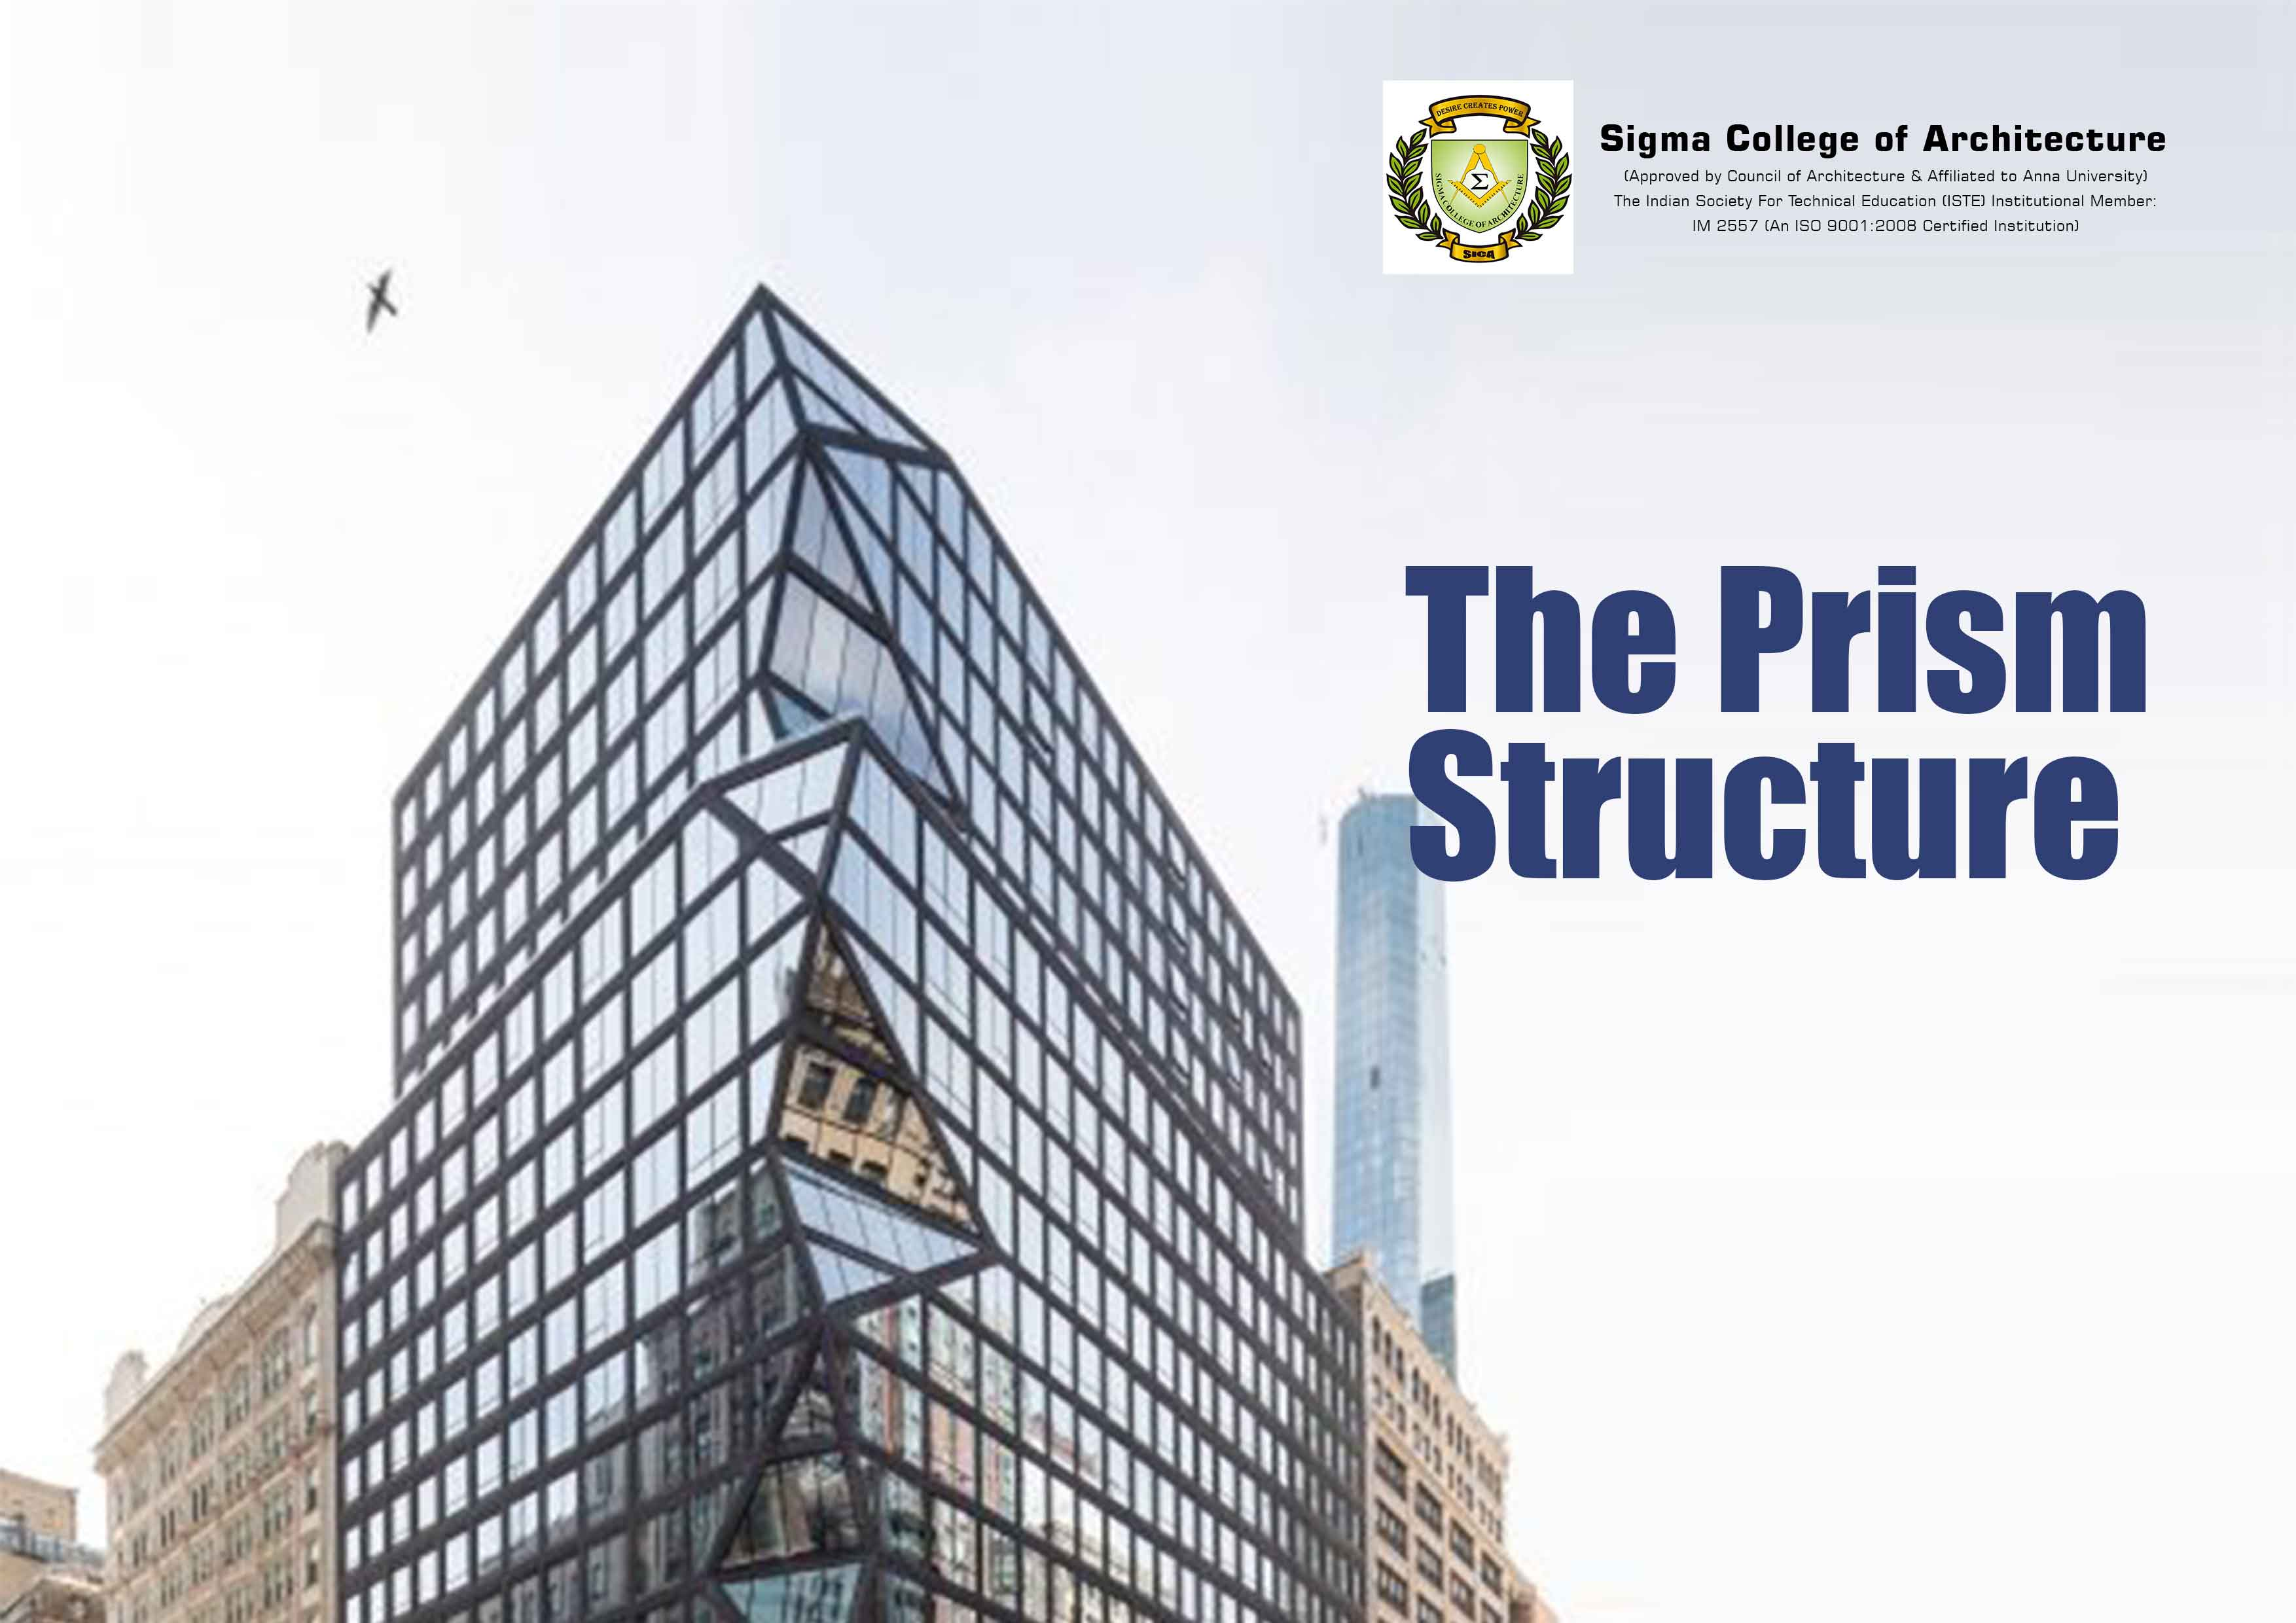 The Prism Structure